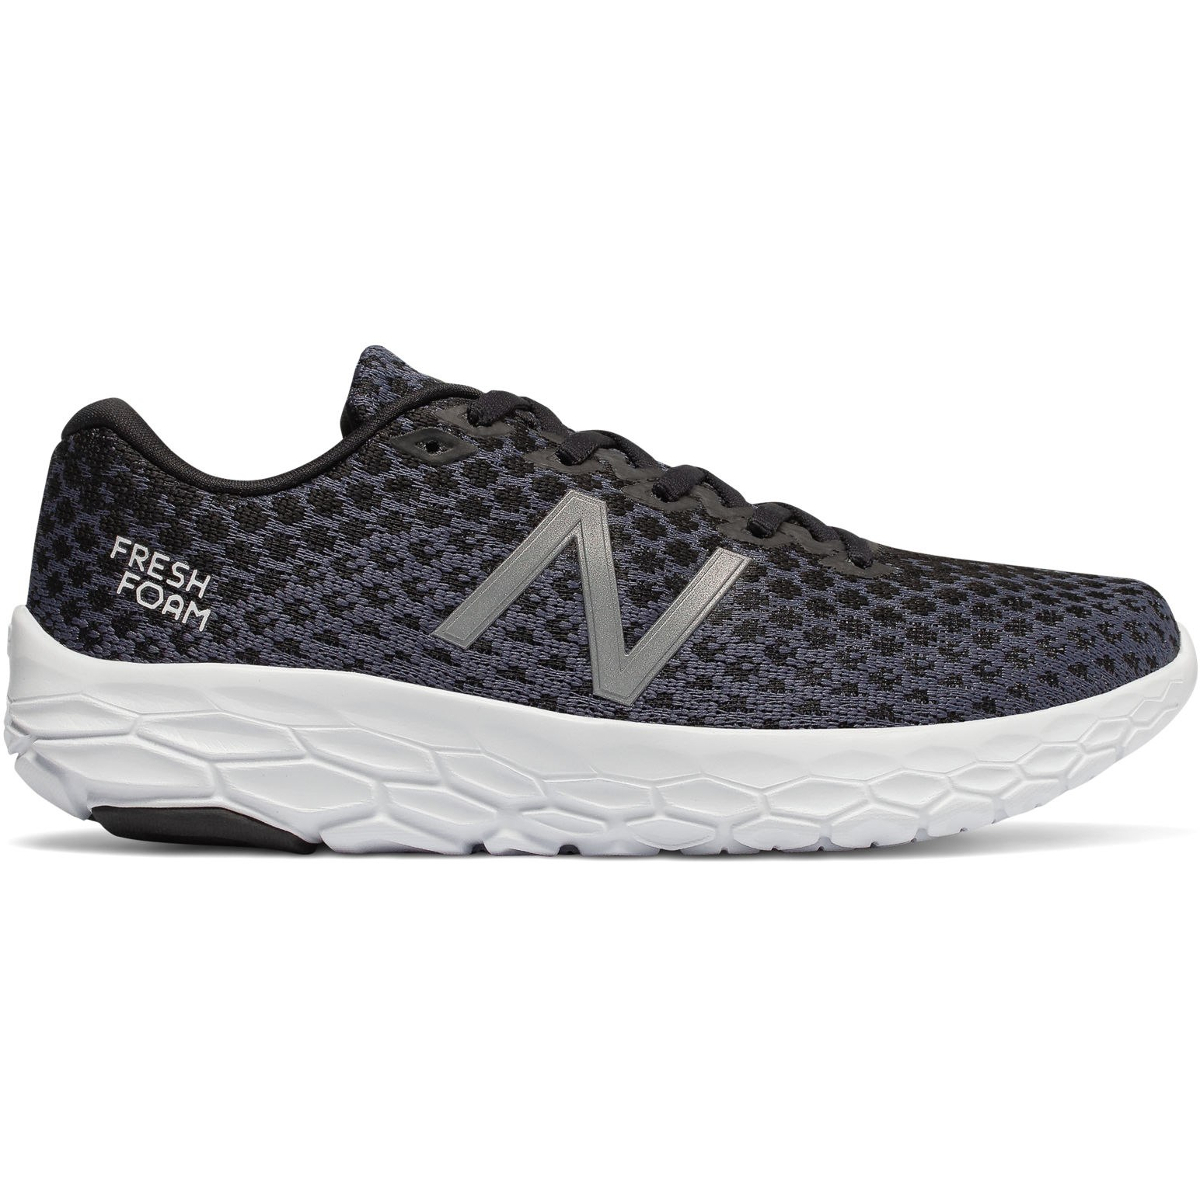 New Balance Women's Fresh Foam Beacon Running Shoes - Black, 6.5